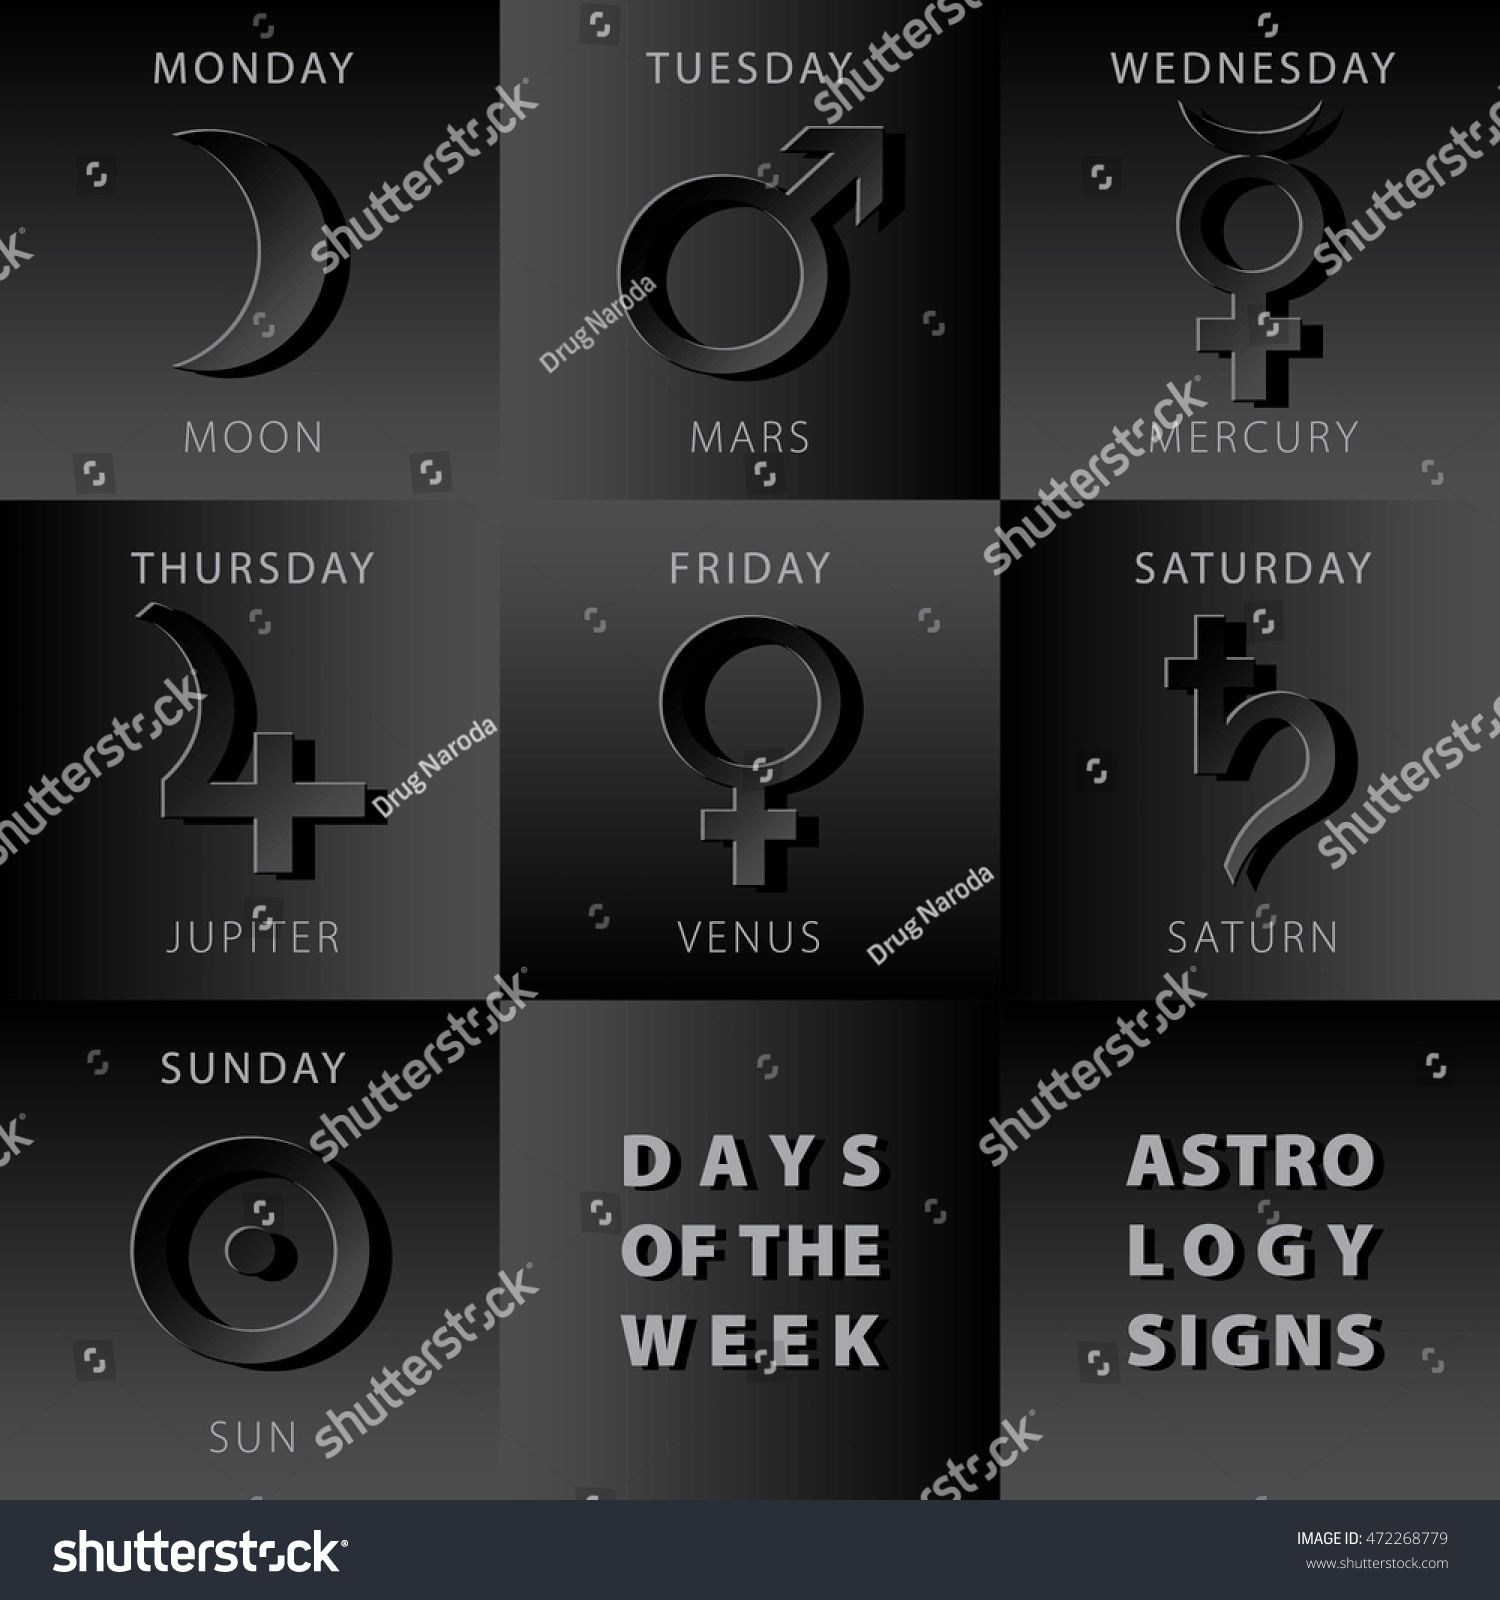 Mars stock symbol images symbols and meanings week days astrology signs moon mars stock vector 472268779 week days astrology signs moon mars mercury buycottarizona Image collections